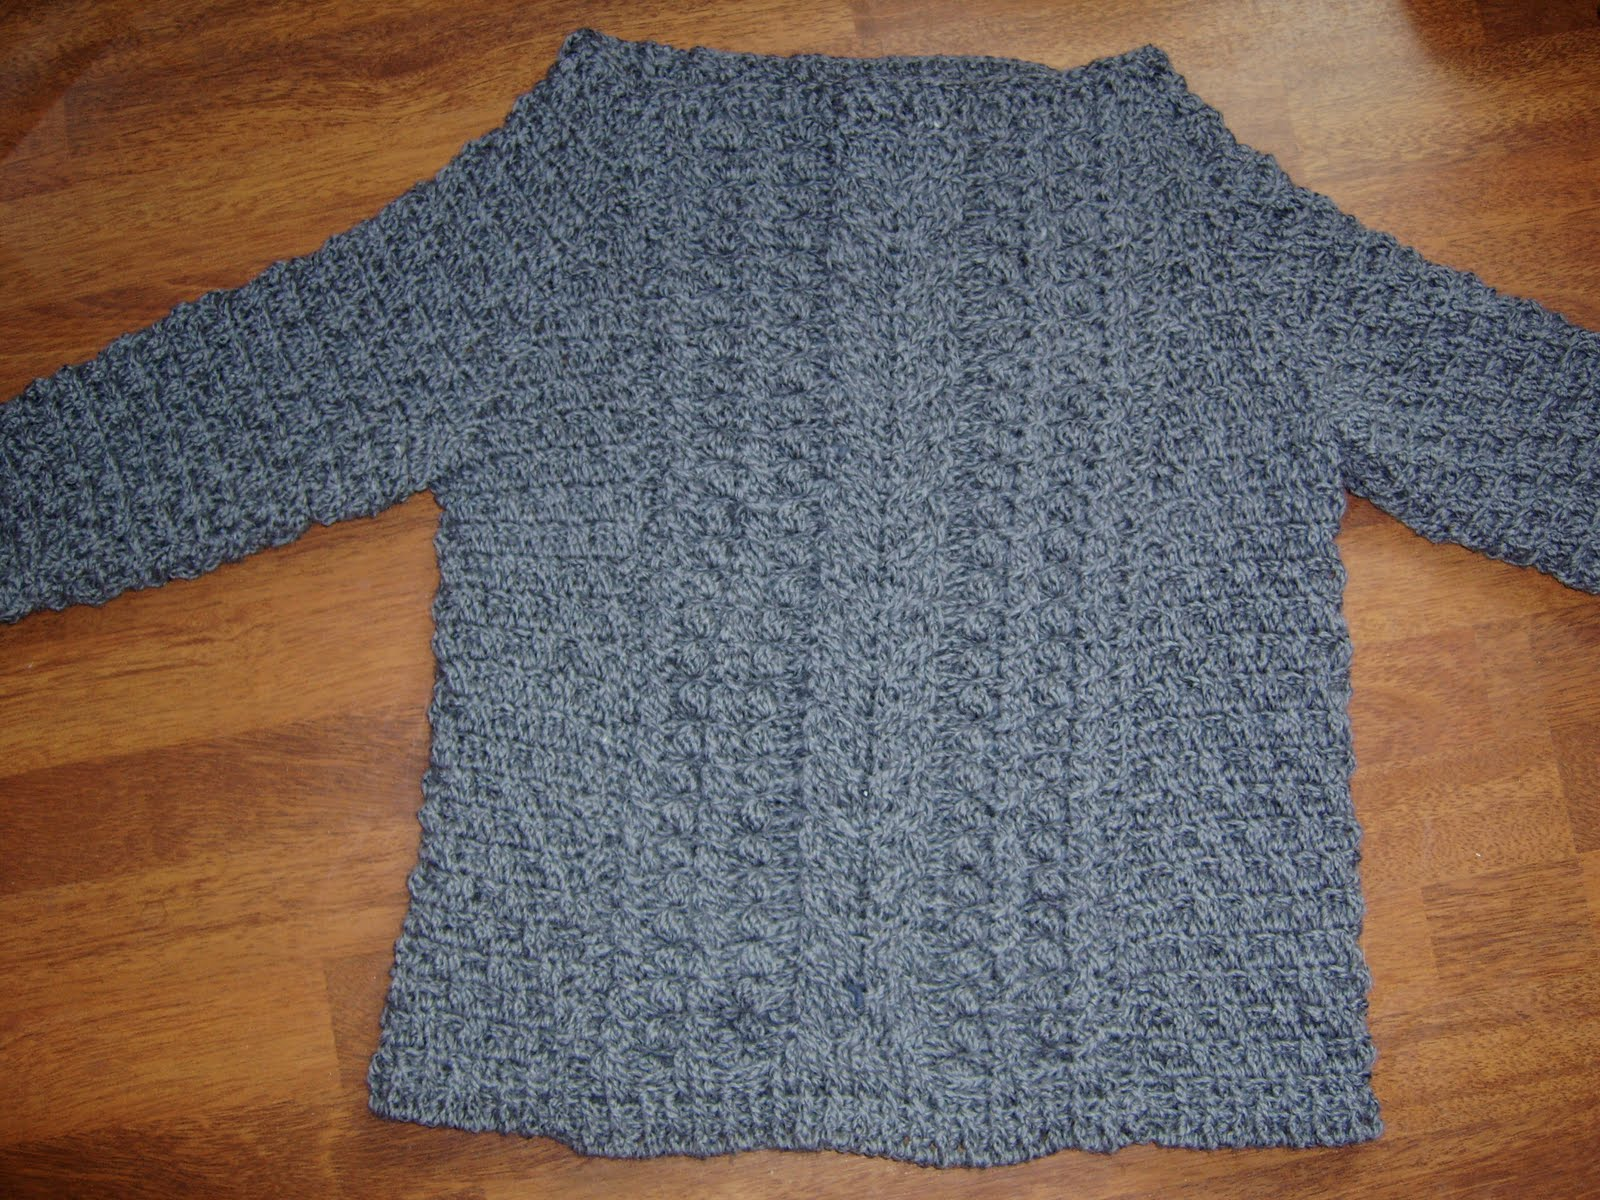 Crocheting Cables : Lancashire Knitter: Crochet Cable Sweater